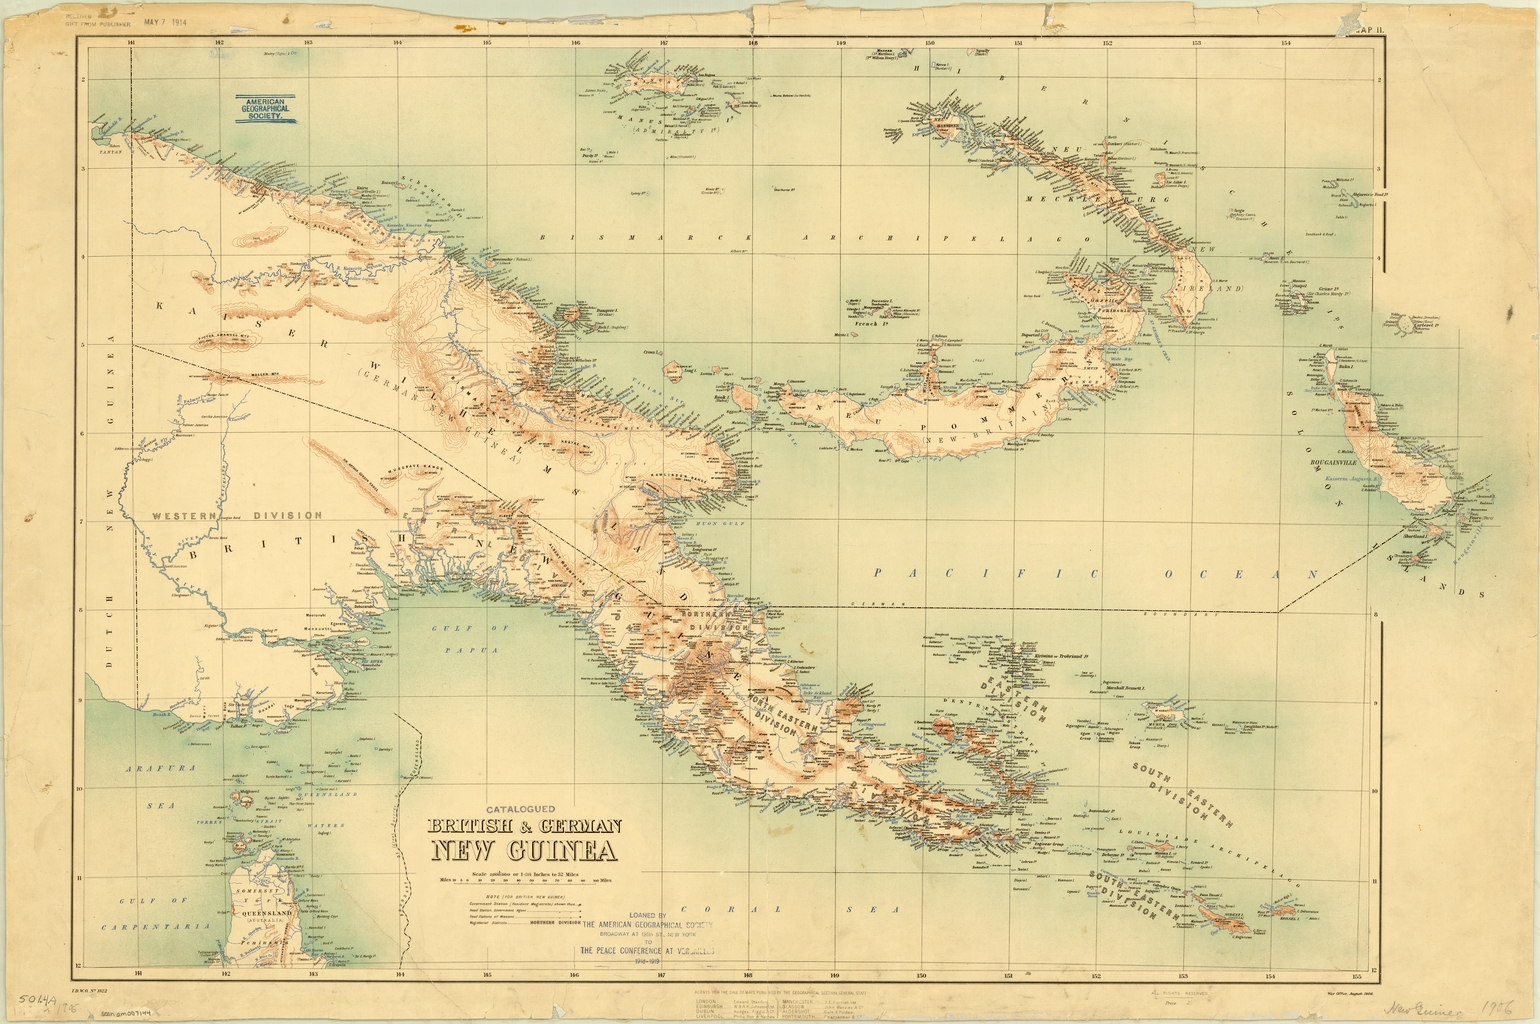 British And German New Guinea - World Digital Library with regard to German New Guinea Map